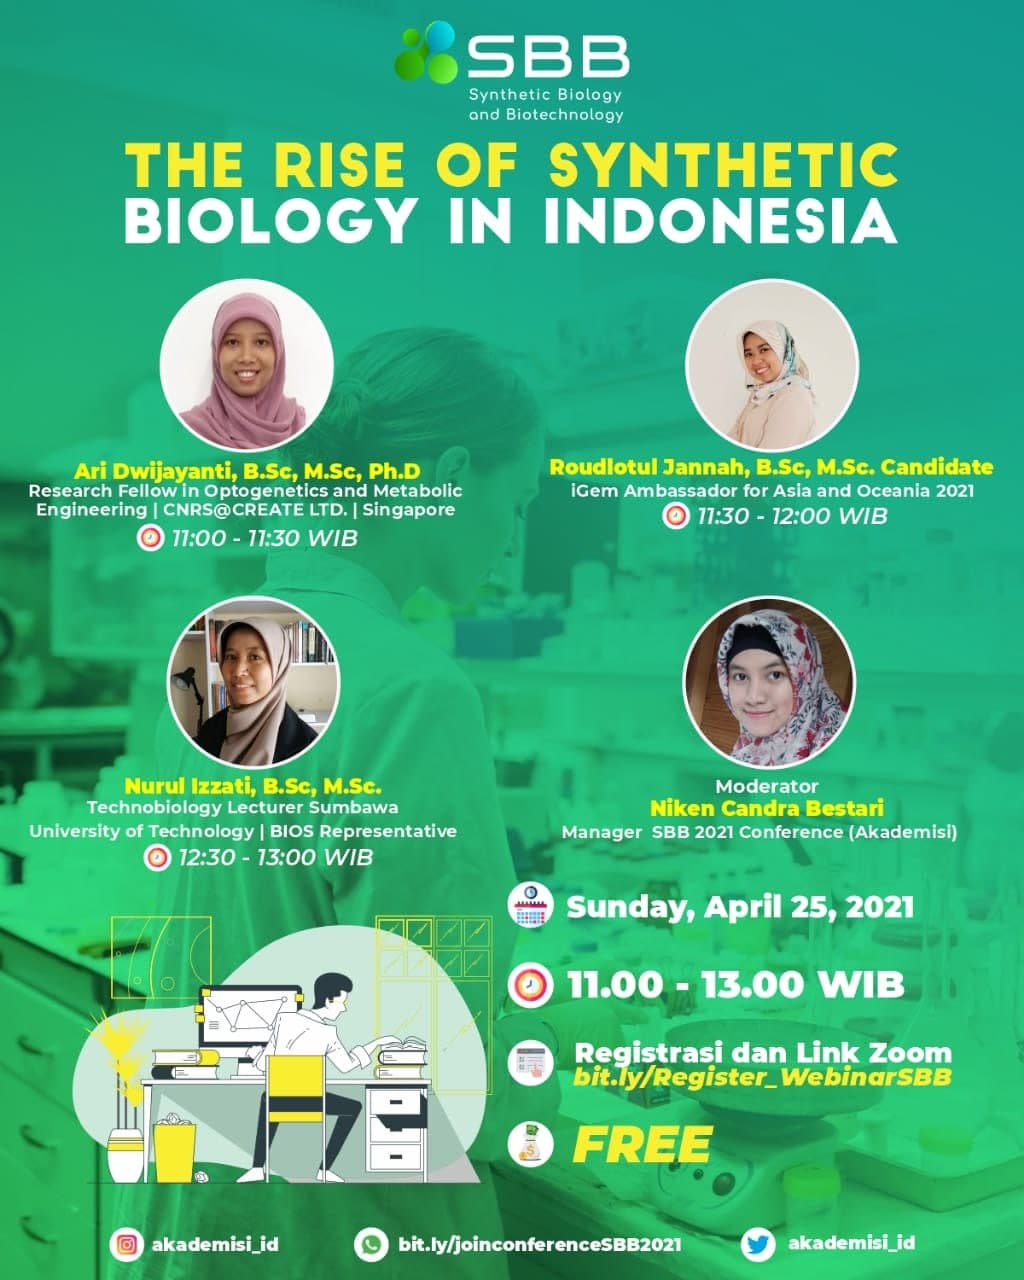 The Rise of Synthetic Biology in Indonesia